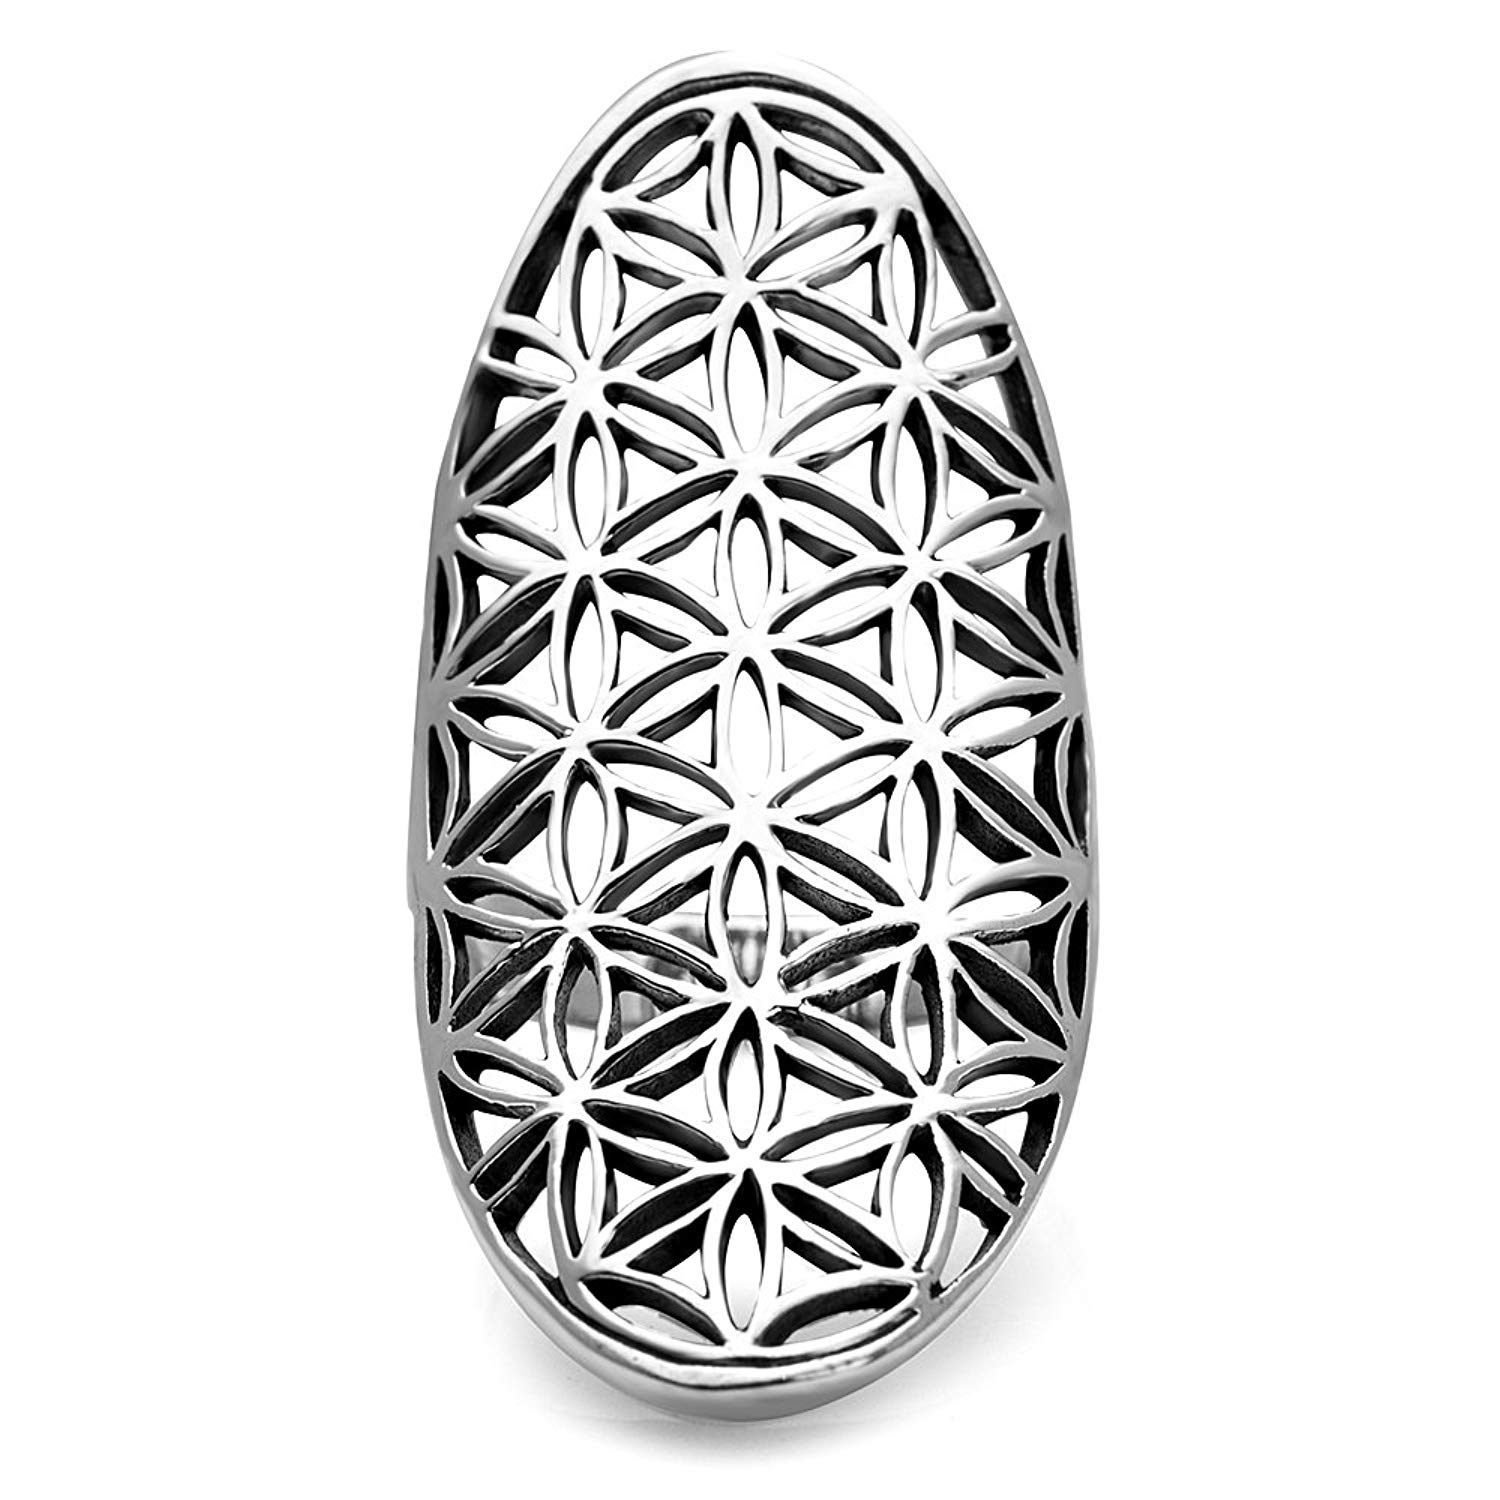 Nickel Free Size 6,7,8,9,10 FLORISHKART Open Filigree Flower of Life Symbol 925 Sterling Silver 4 cm Long Large Band Ring